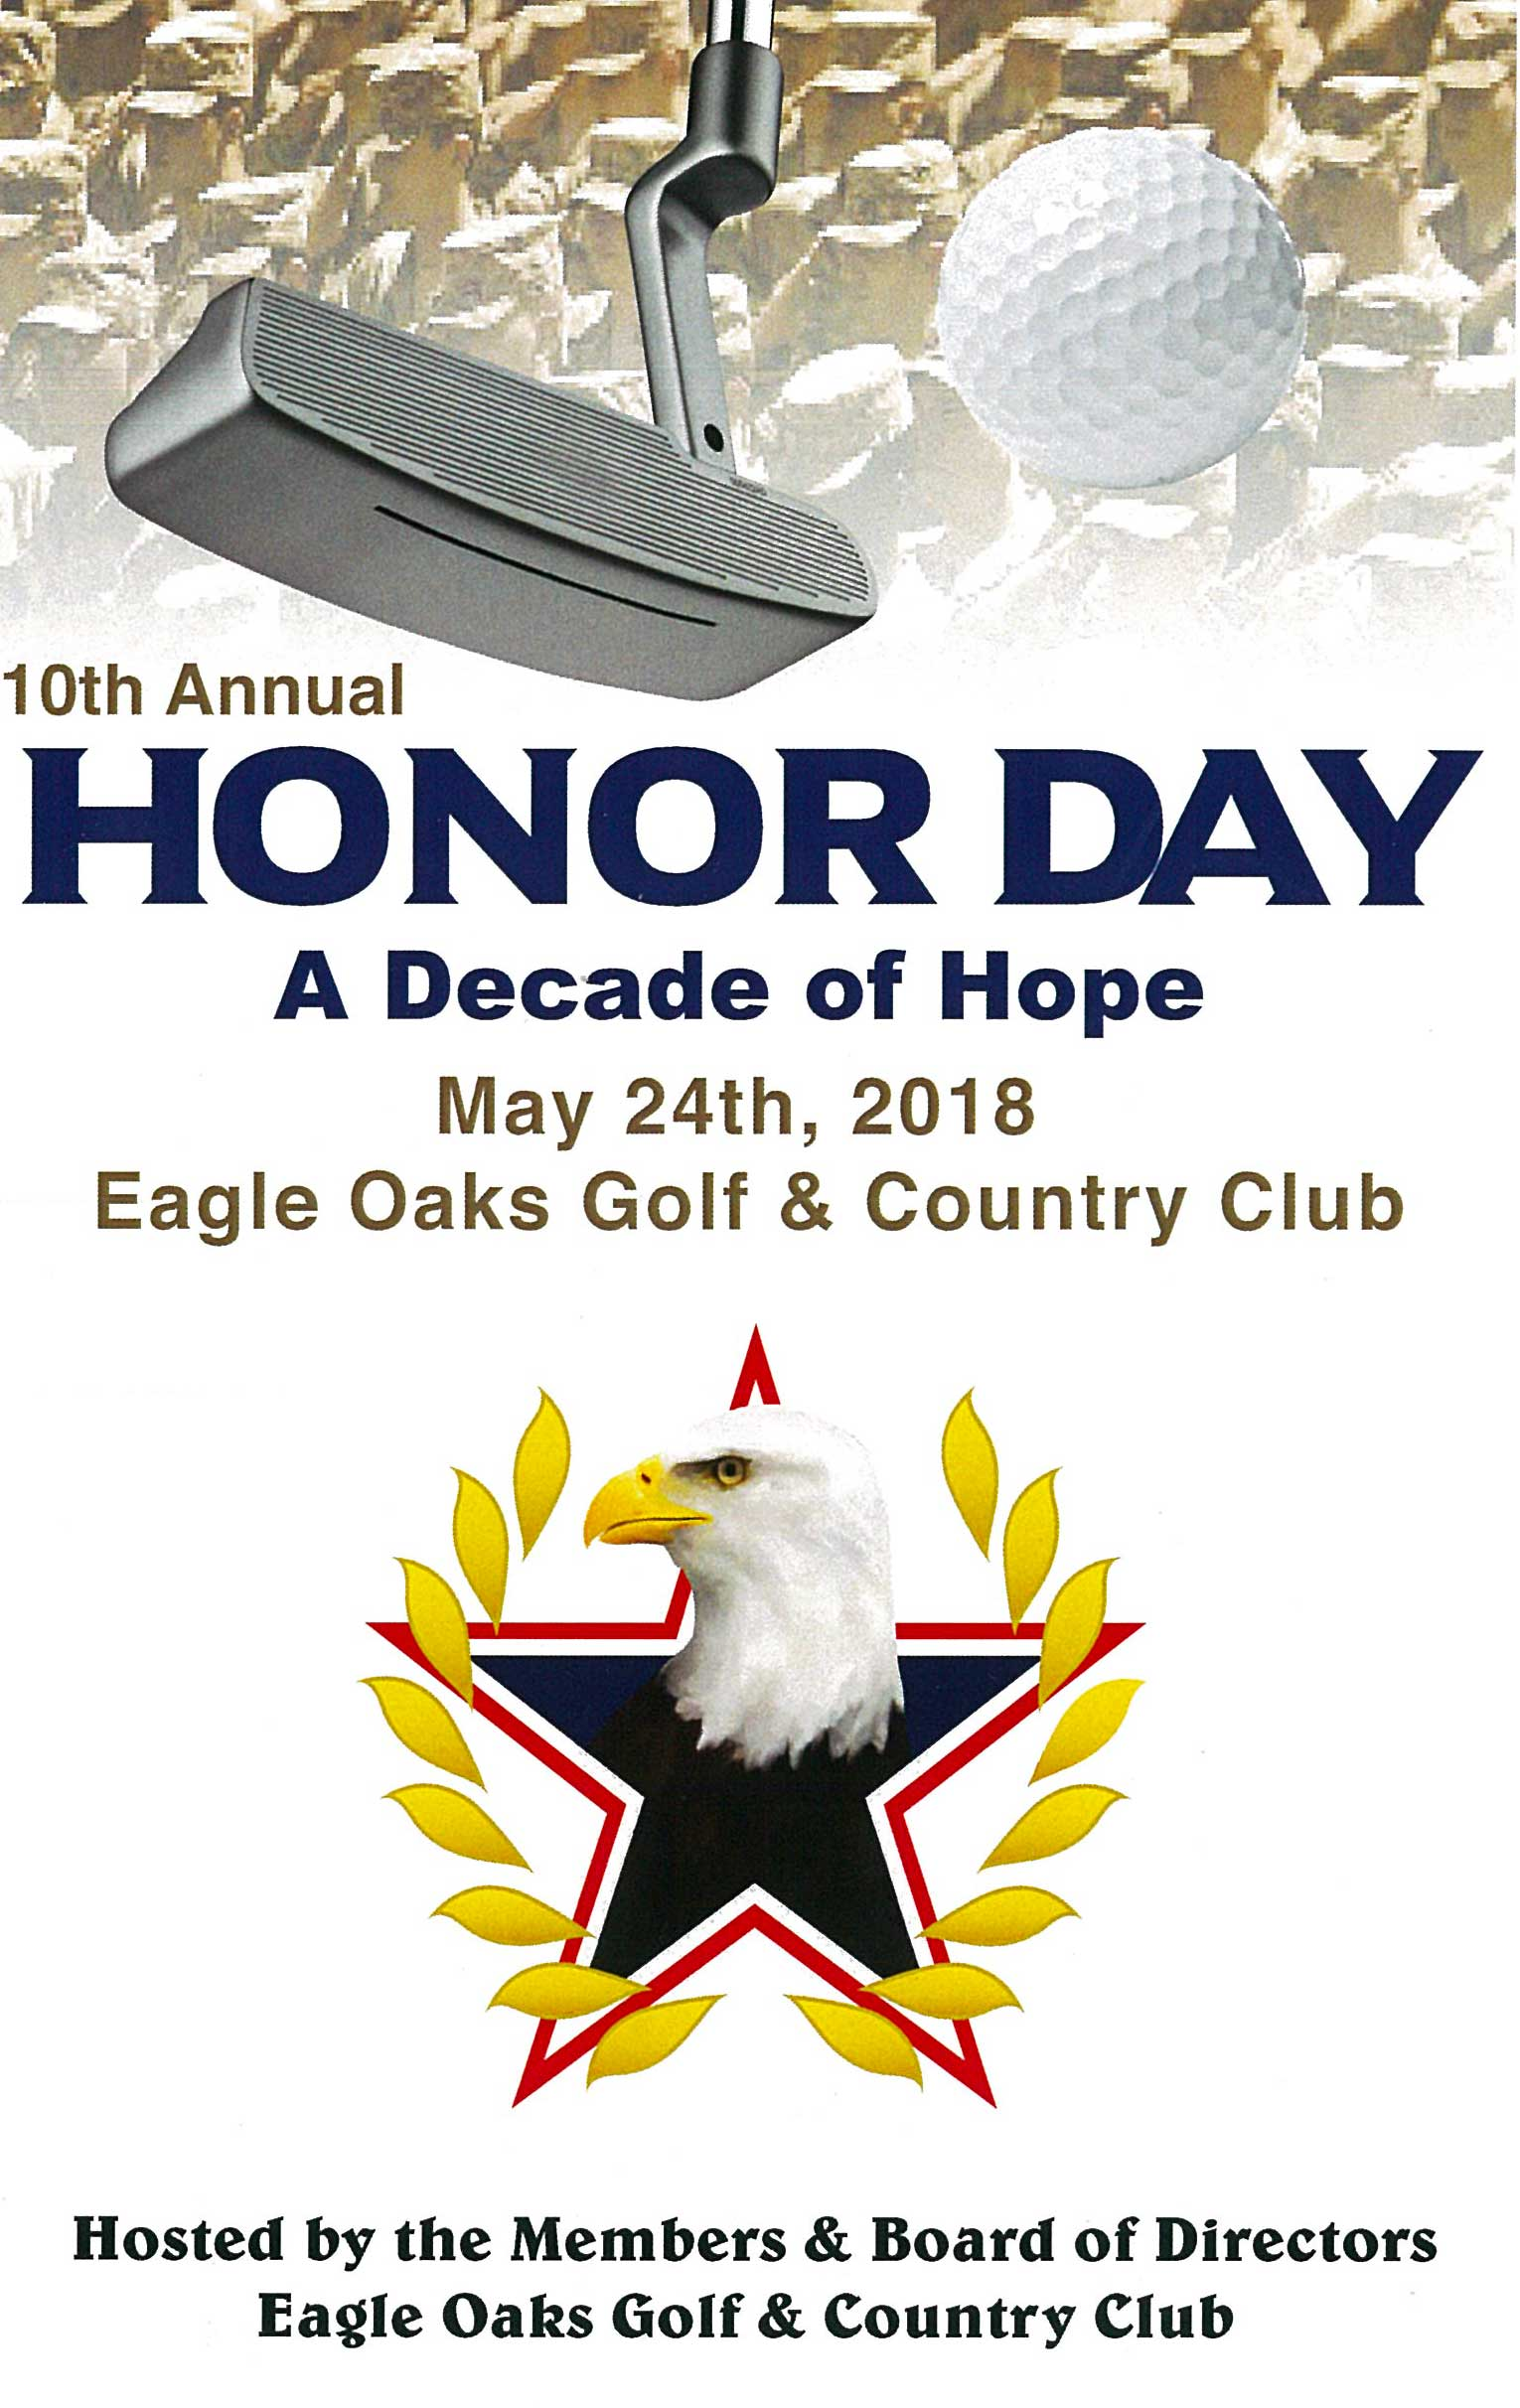 10th Annual Honor Day